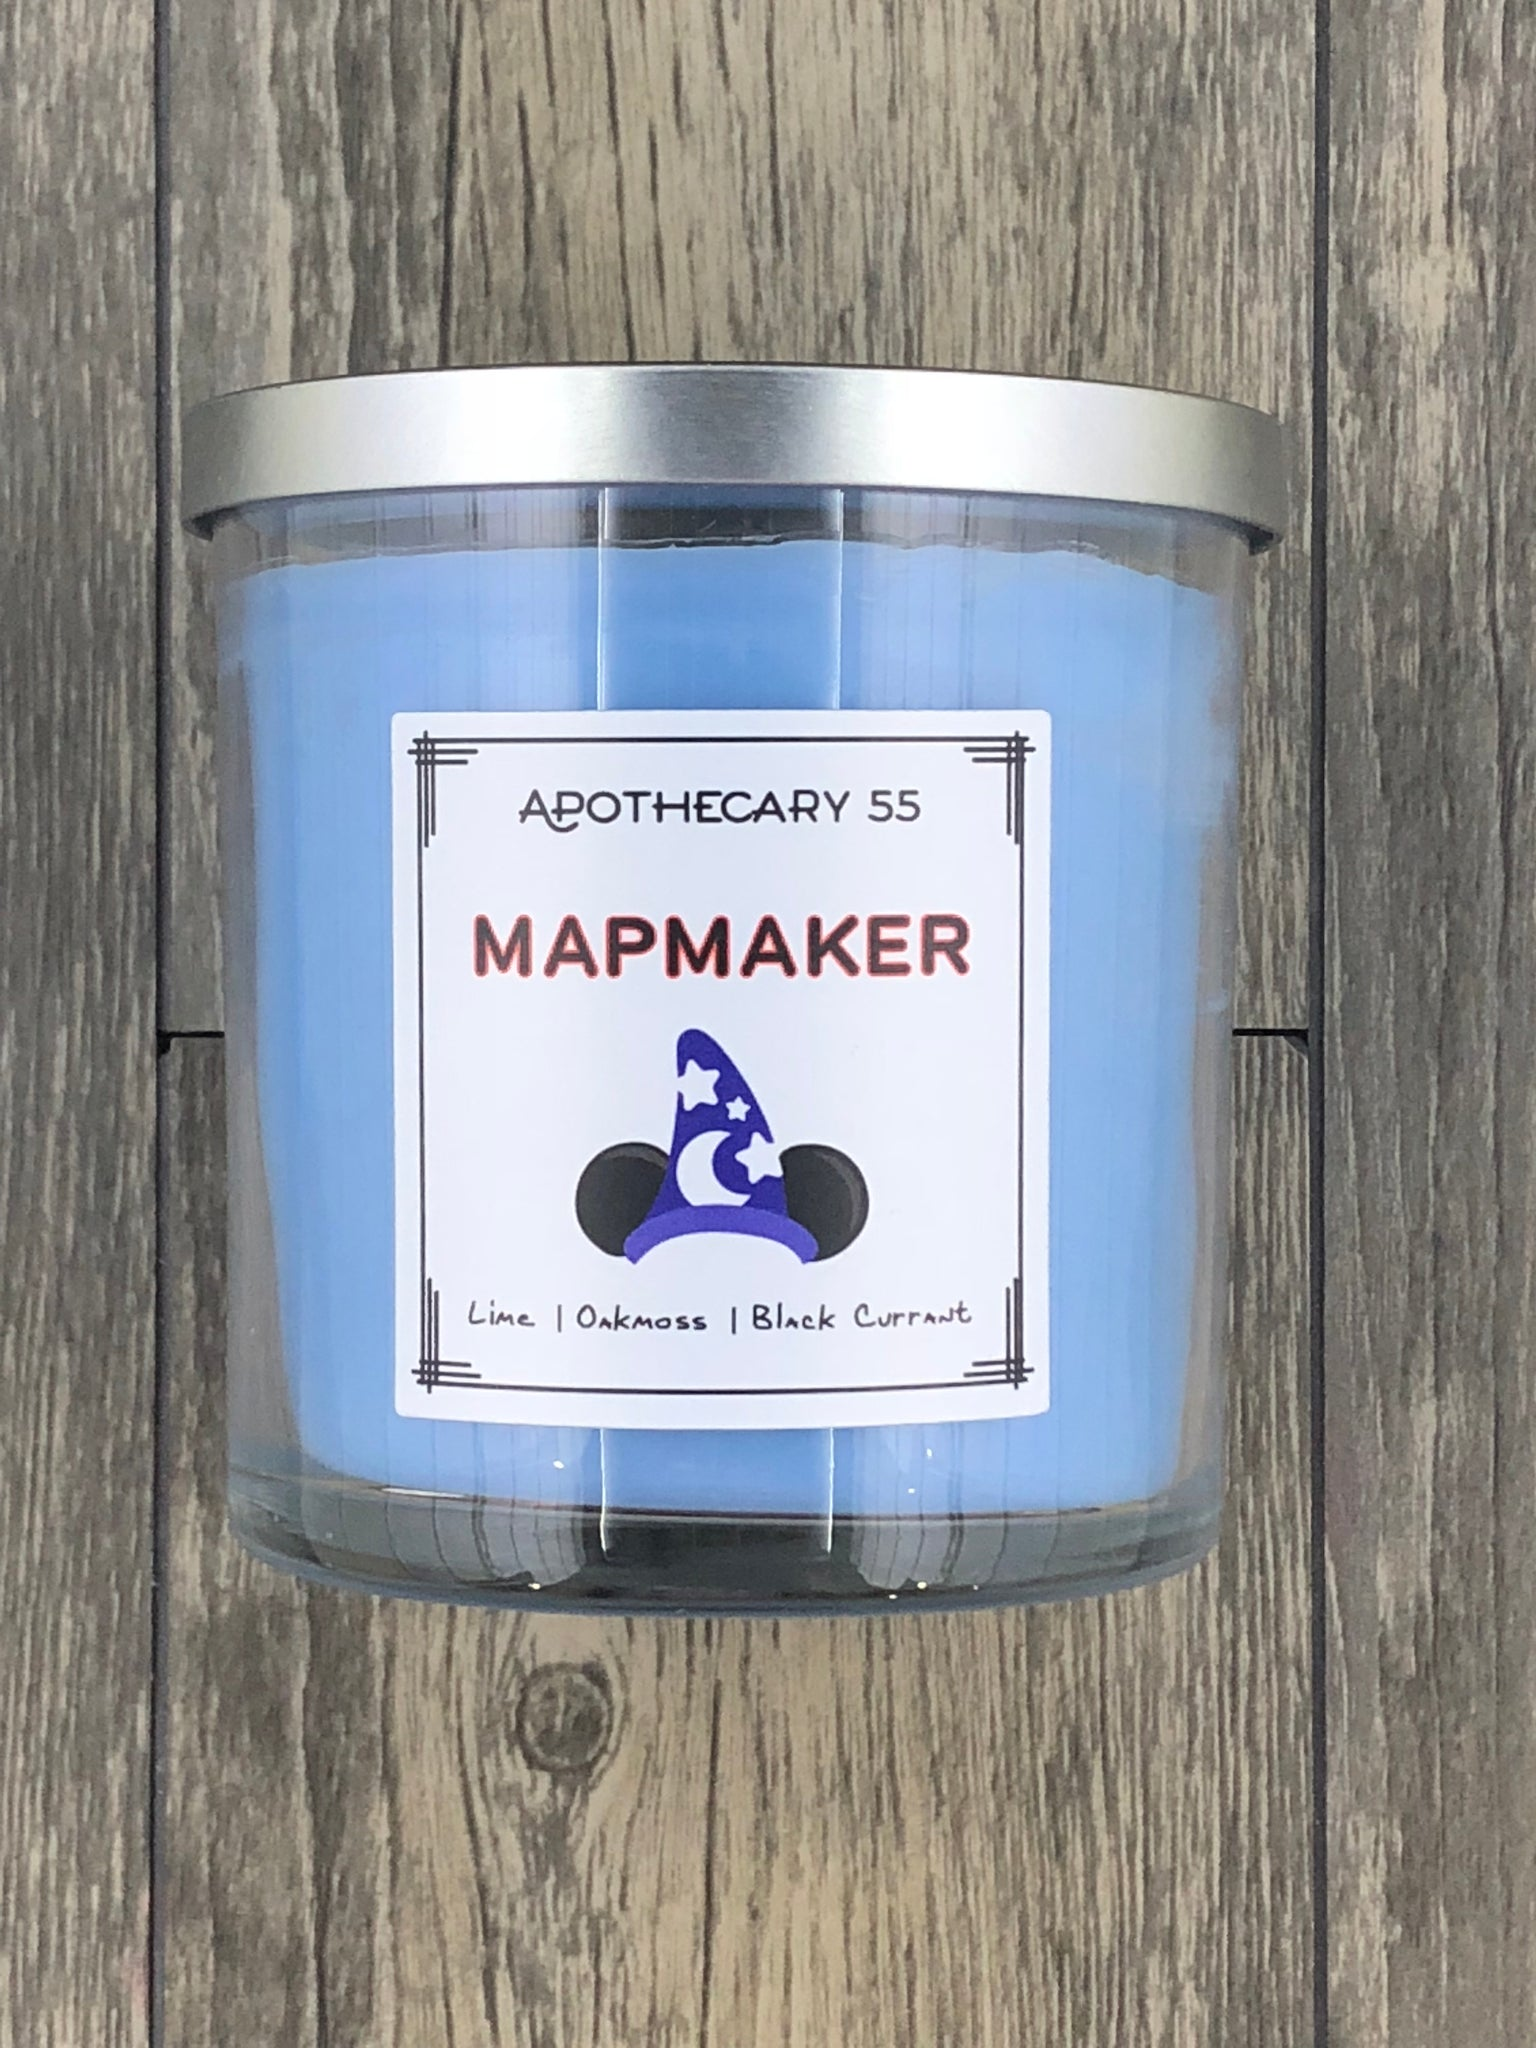 Mapmaker 9 oz single wick candle